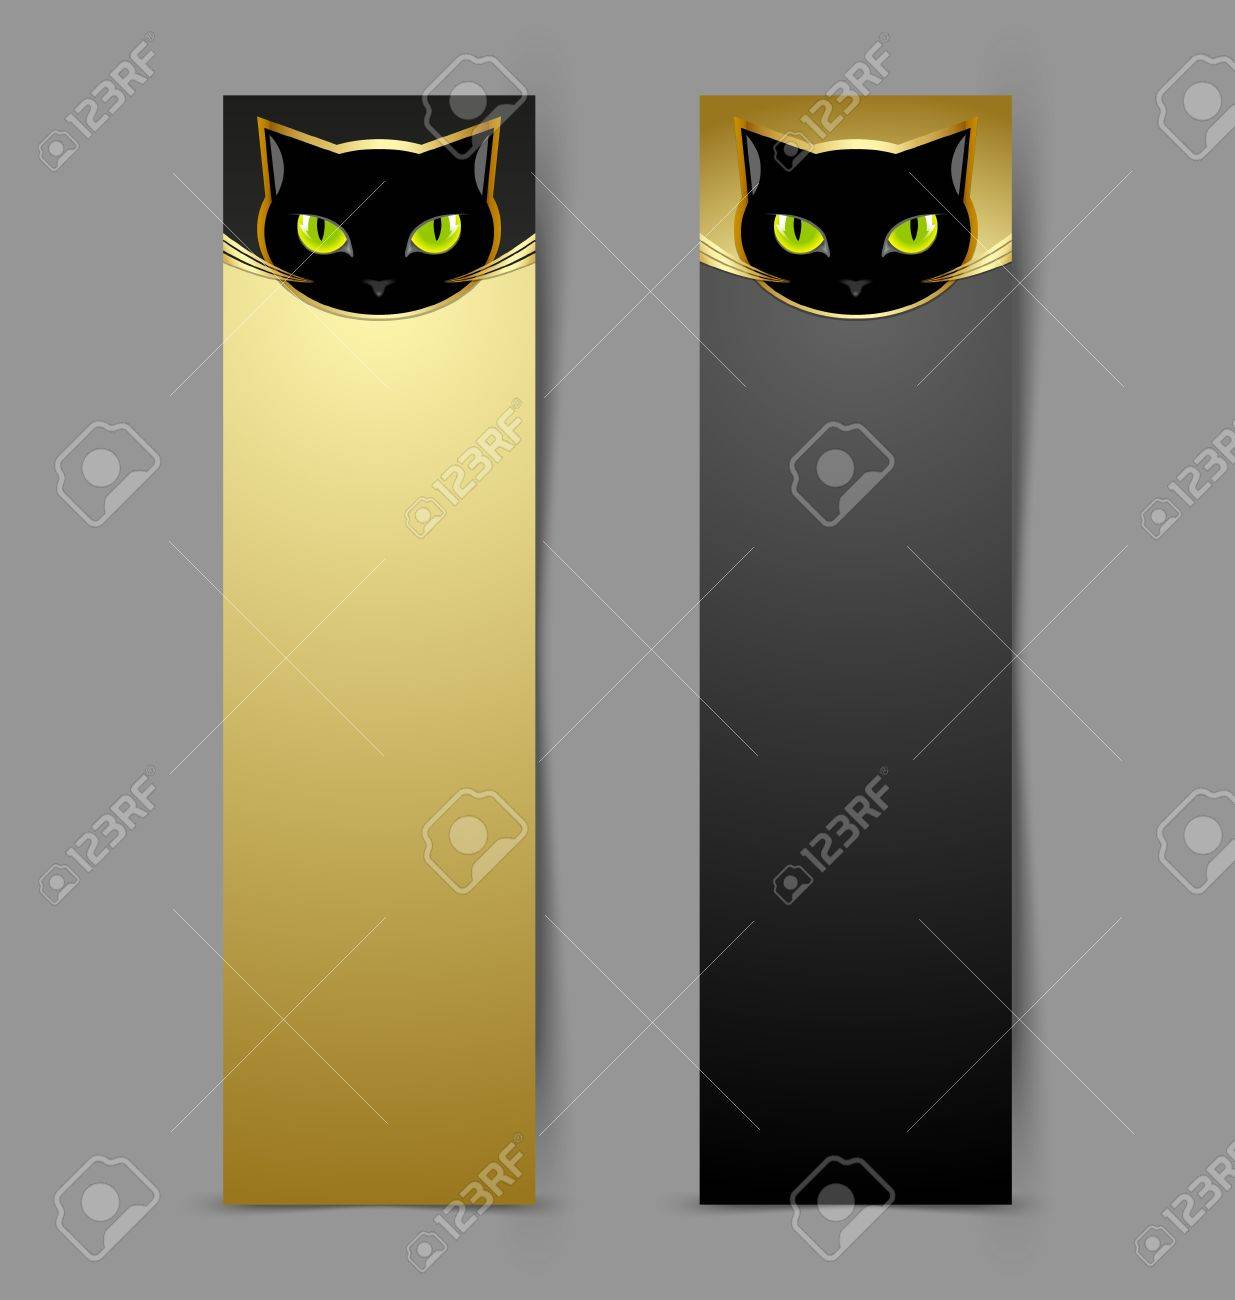 Black cat head banners isolated on grey background Stock Vector - 14960220